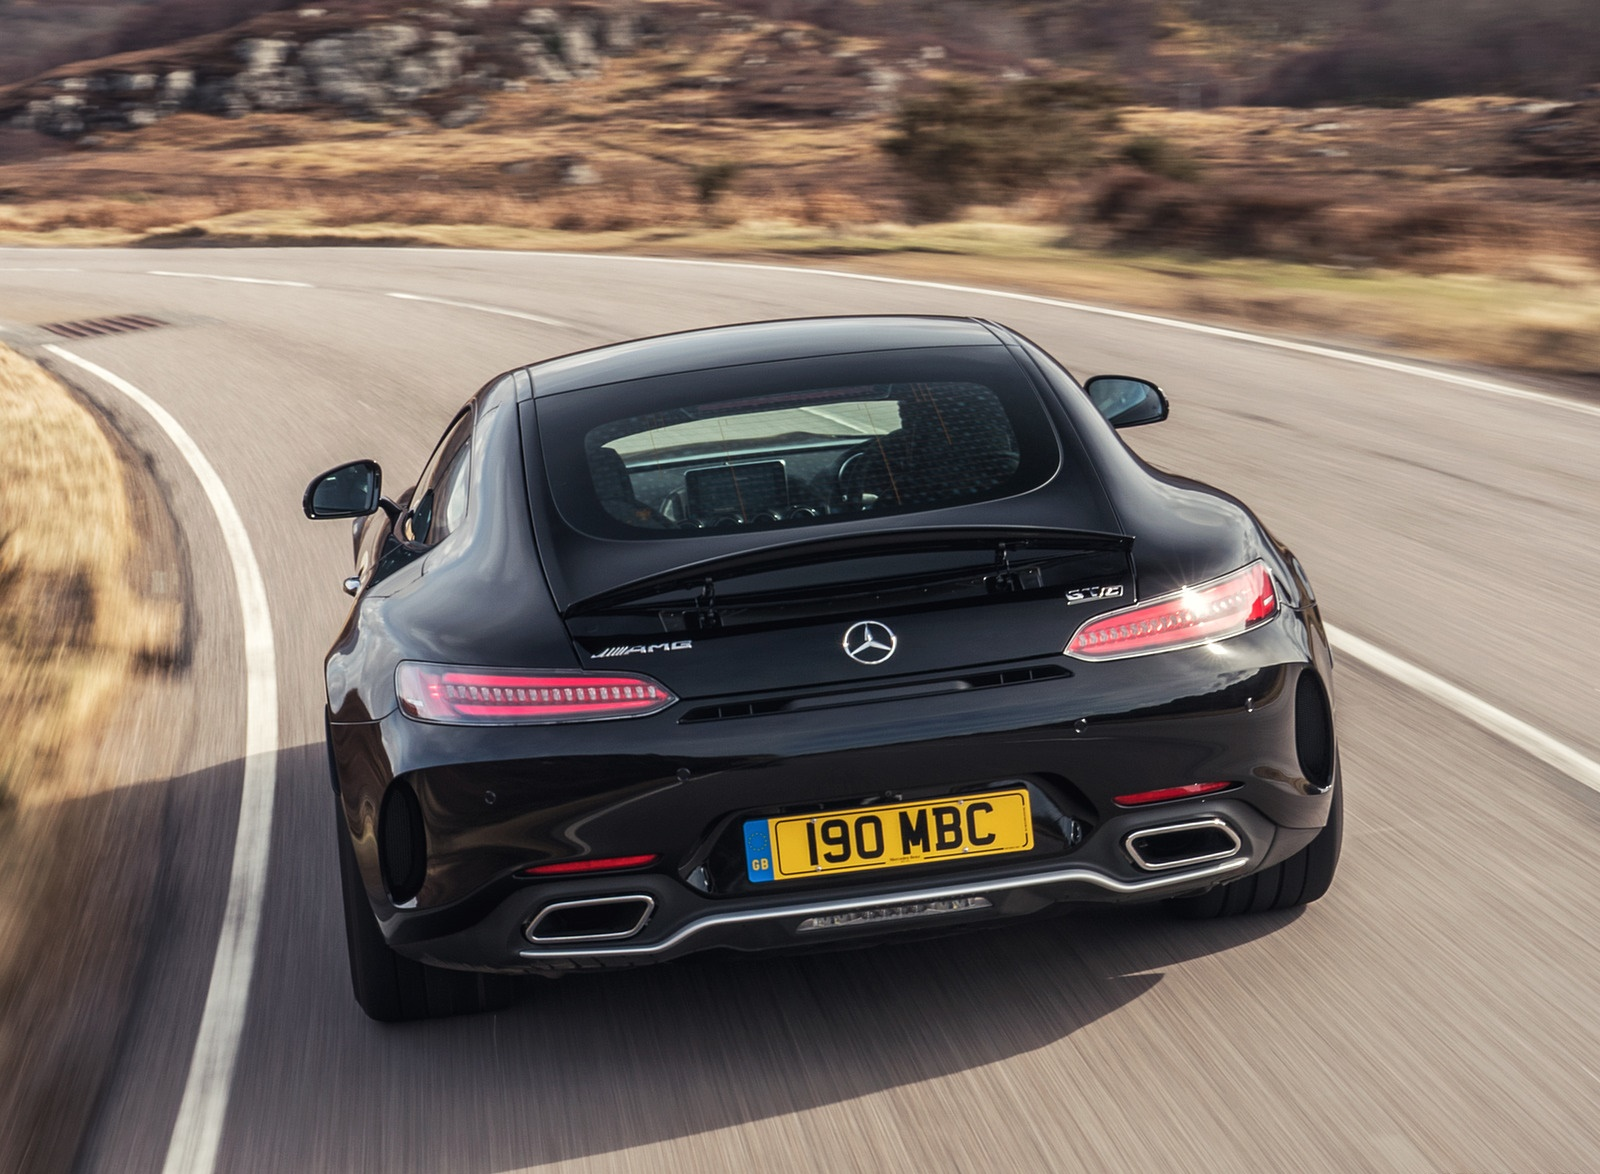 2019 Mercedes-AMG GT C Coupe Rear Wallpaper (12)